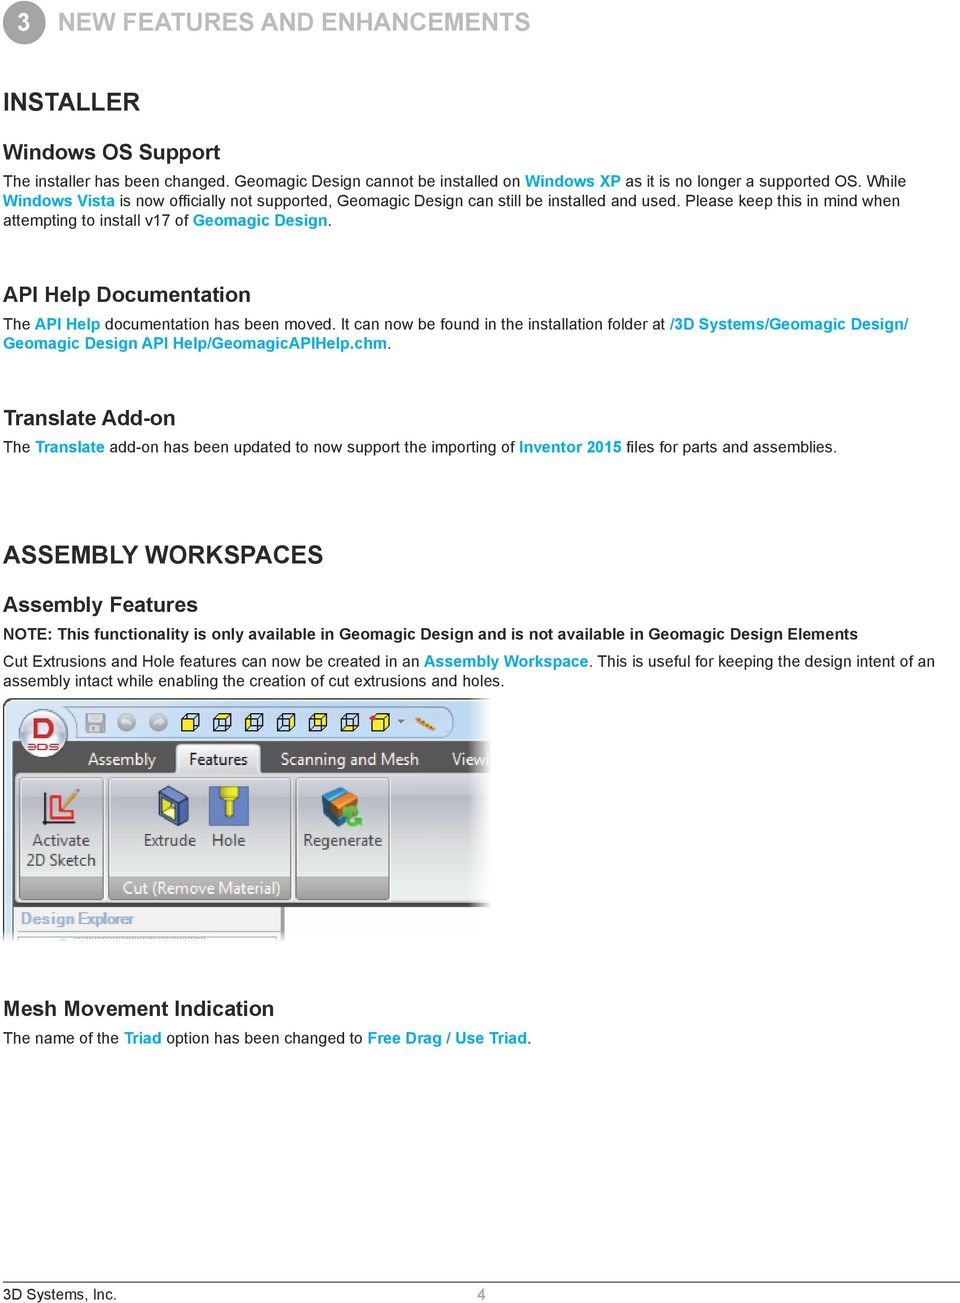 API Help Documentation The API Help documentation has been moved. It can now be found in the installation folder at /3D Systems/Geomagic Design/ Geomagic Design API Help/GeomagicAPIHelp.chm.